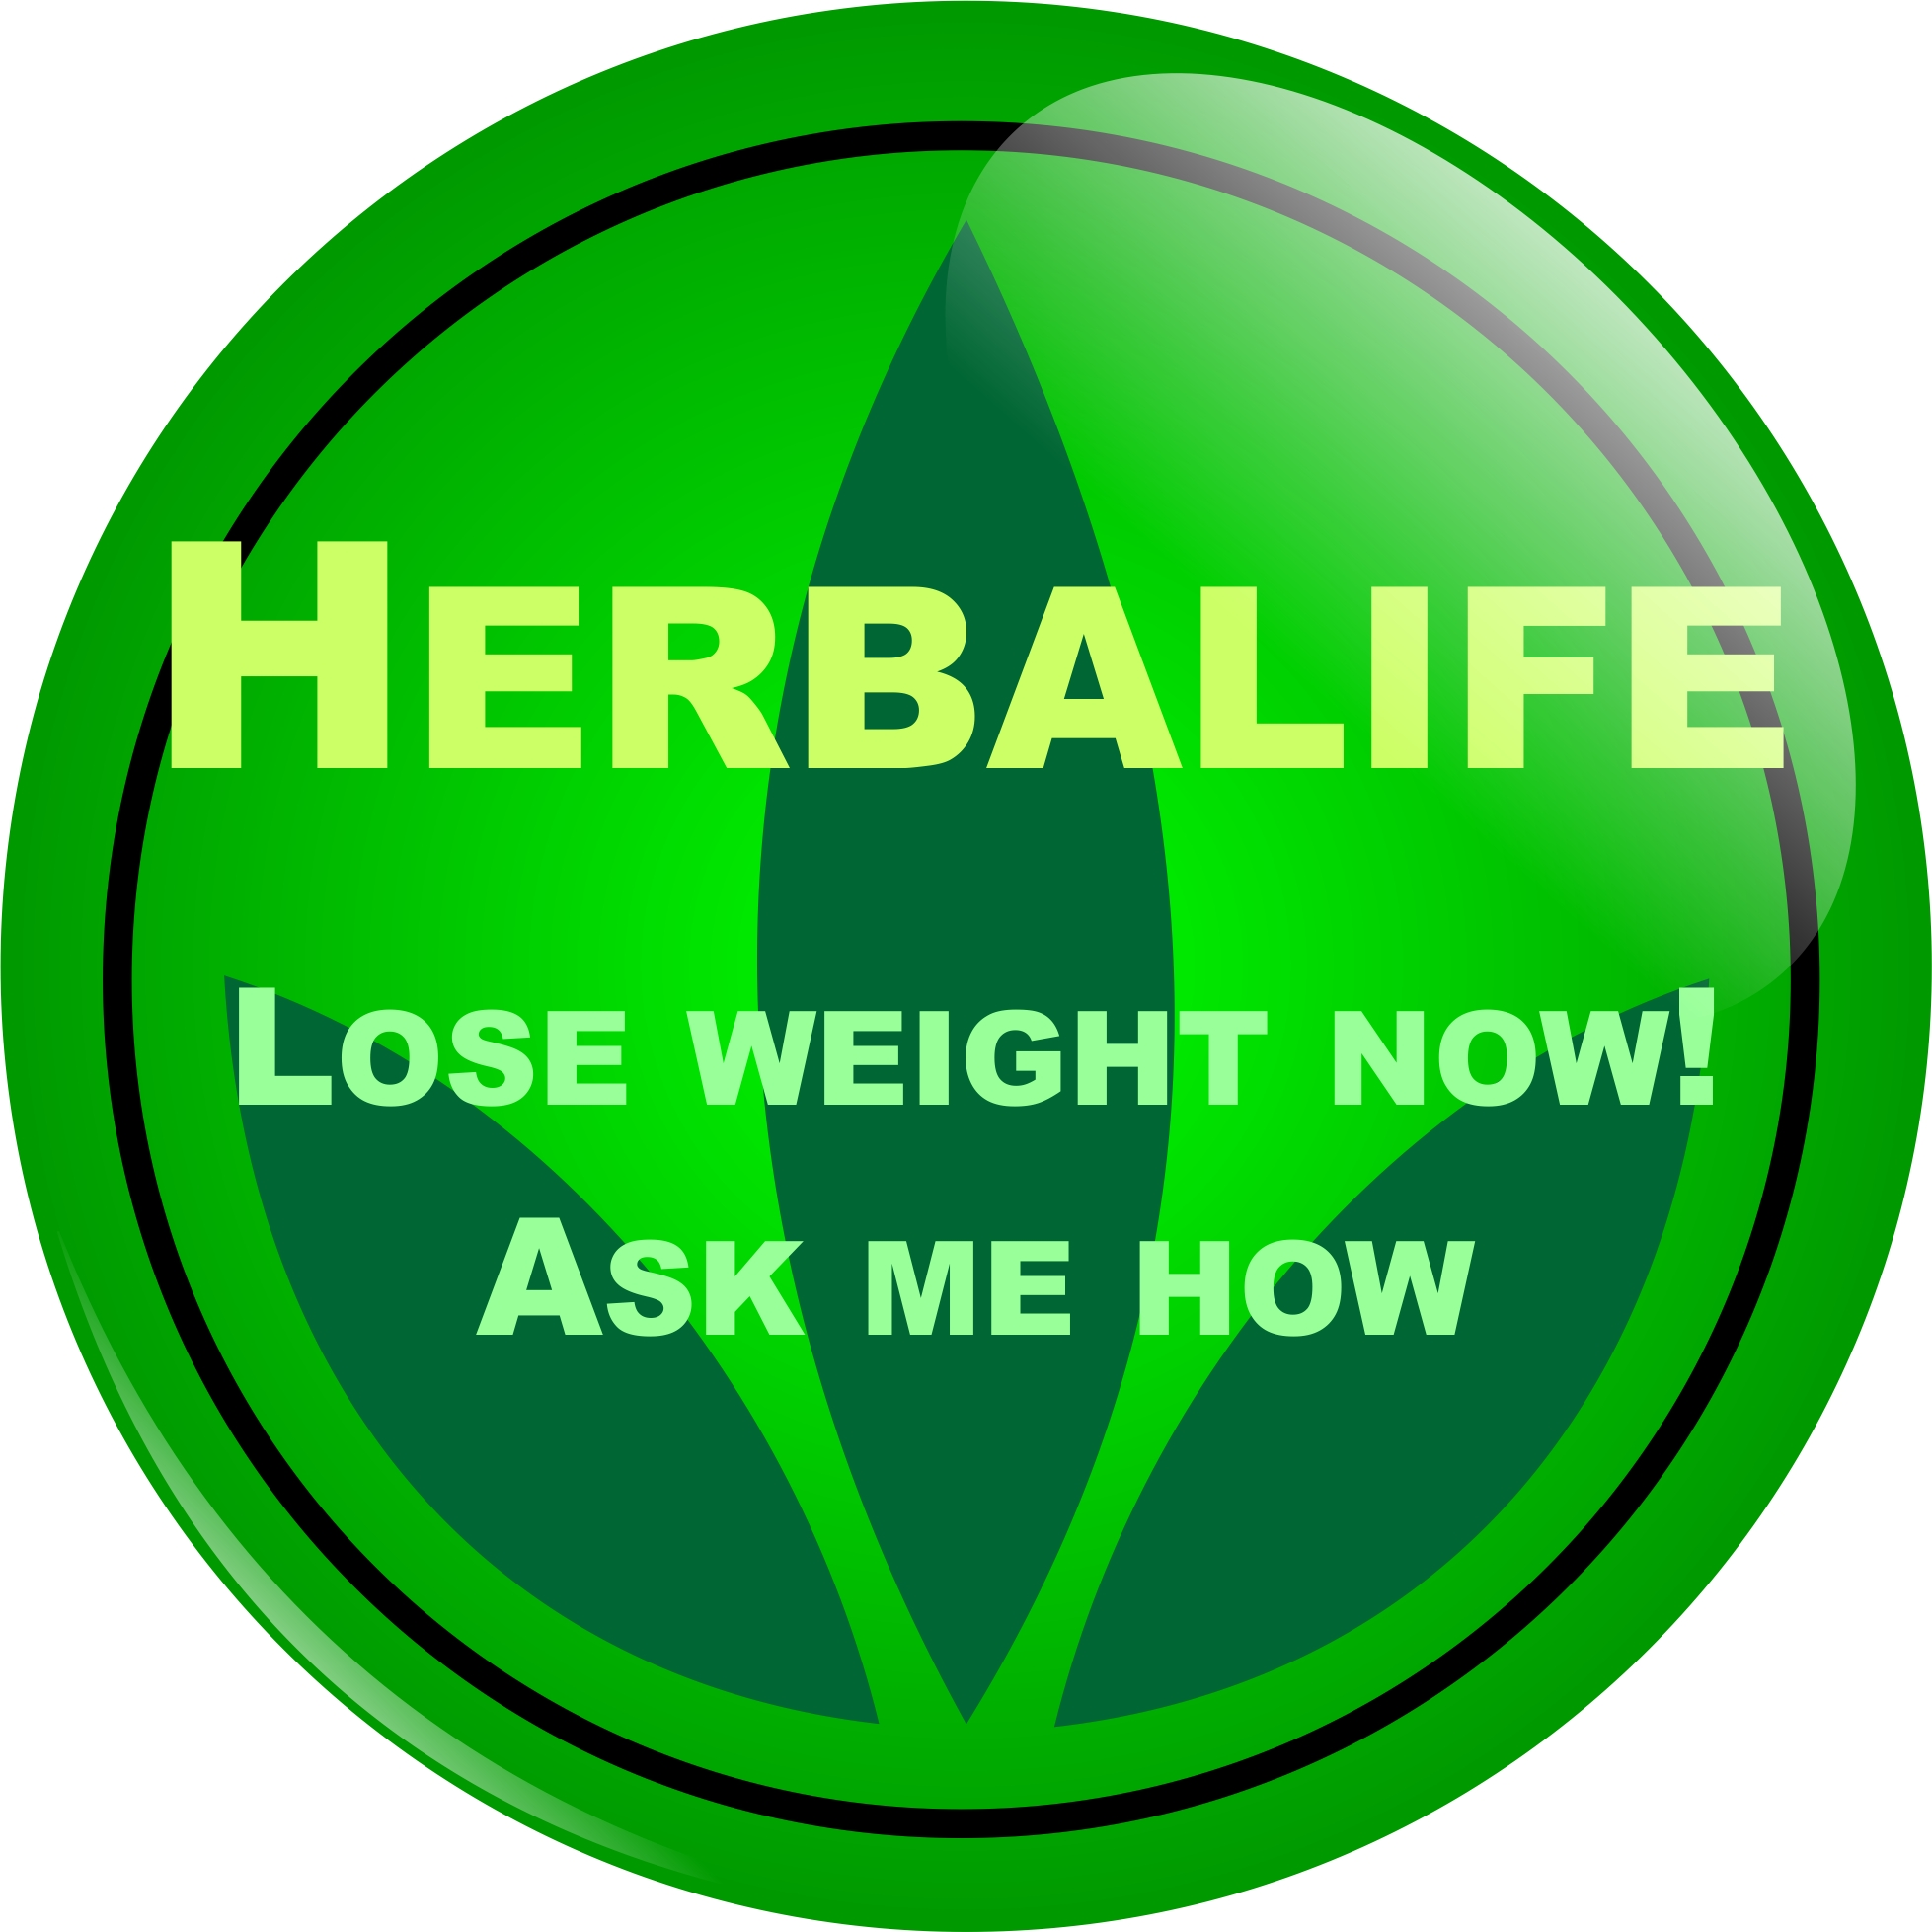 Multi-level Marketing Mlm Can Be A Very Profitable Way To Earn Additional Income In A Flexible Environment. herbalife_badge_by_paelex-d3b79b0